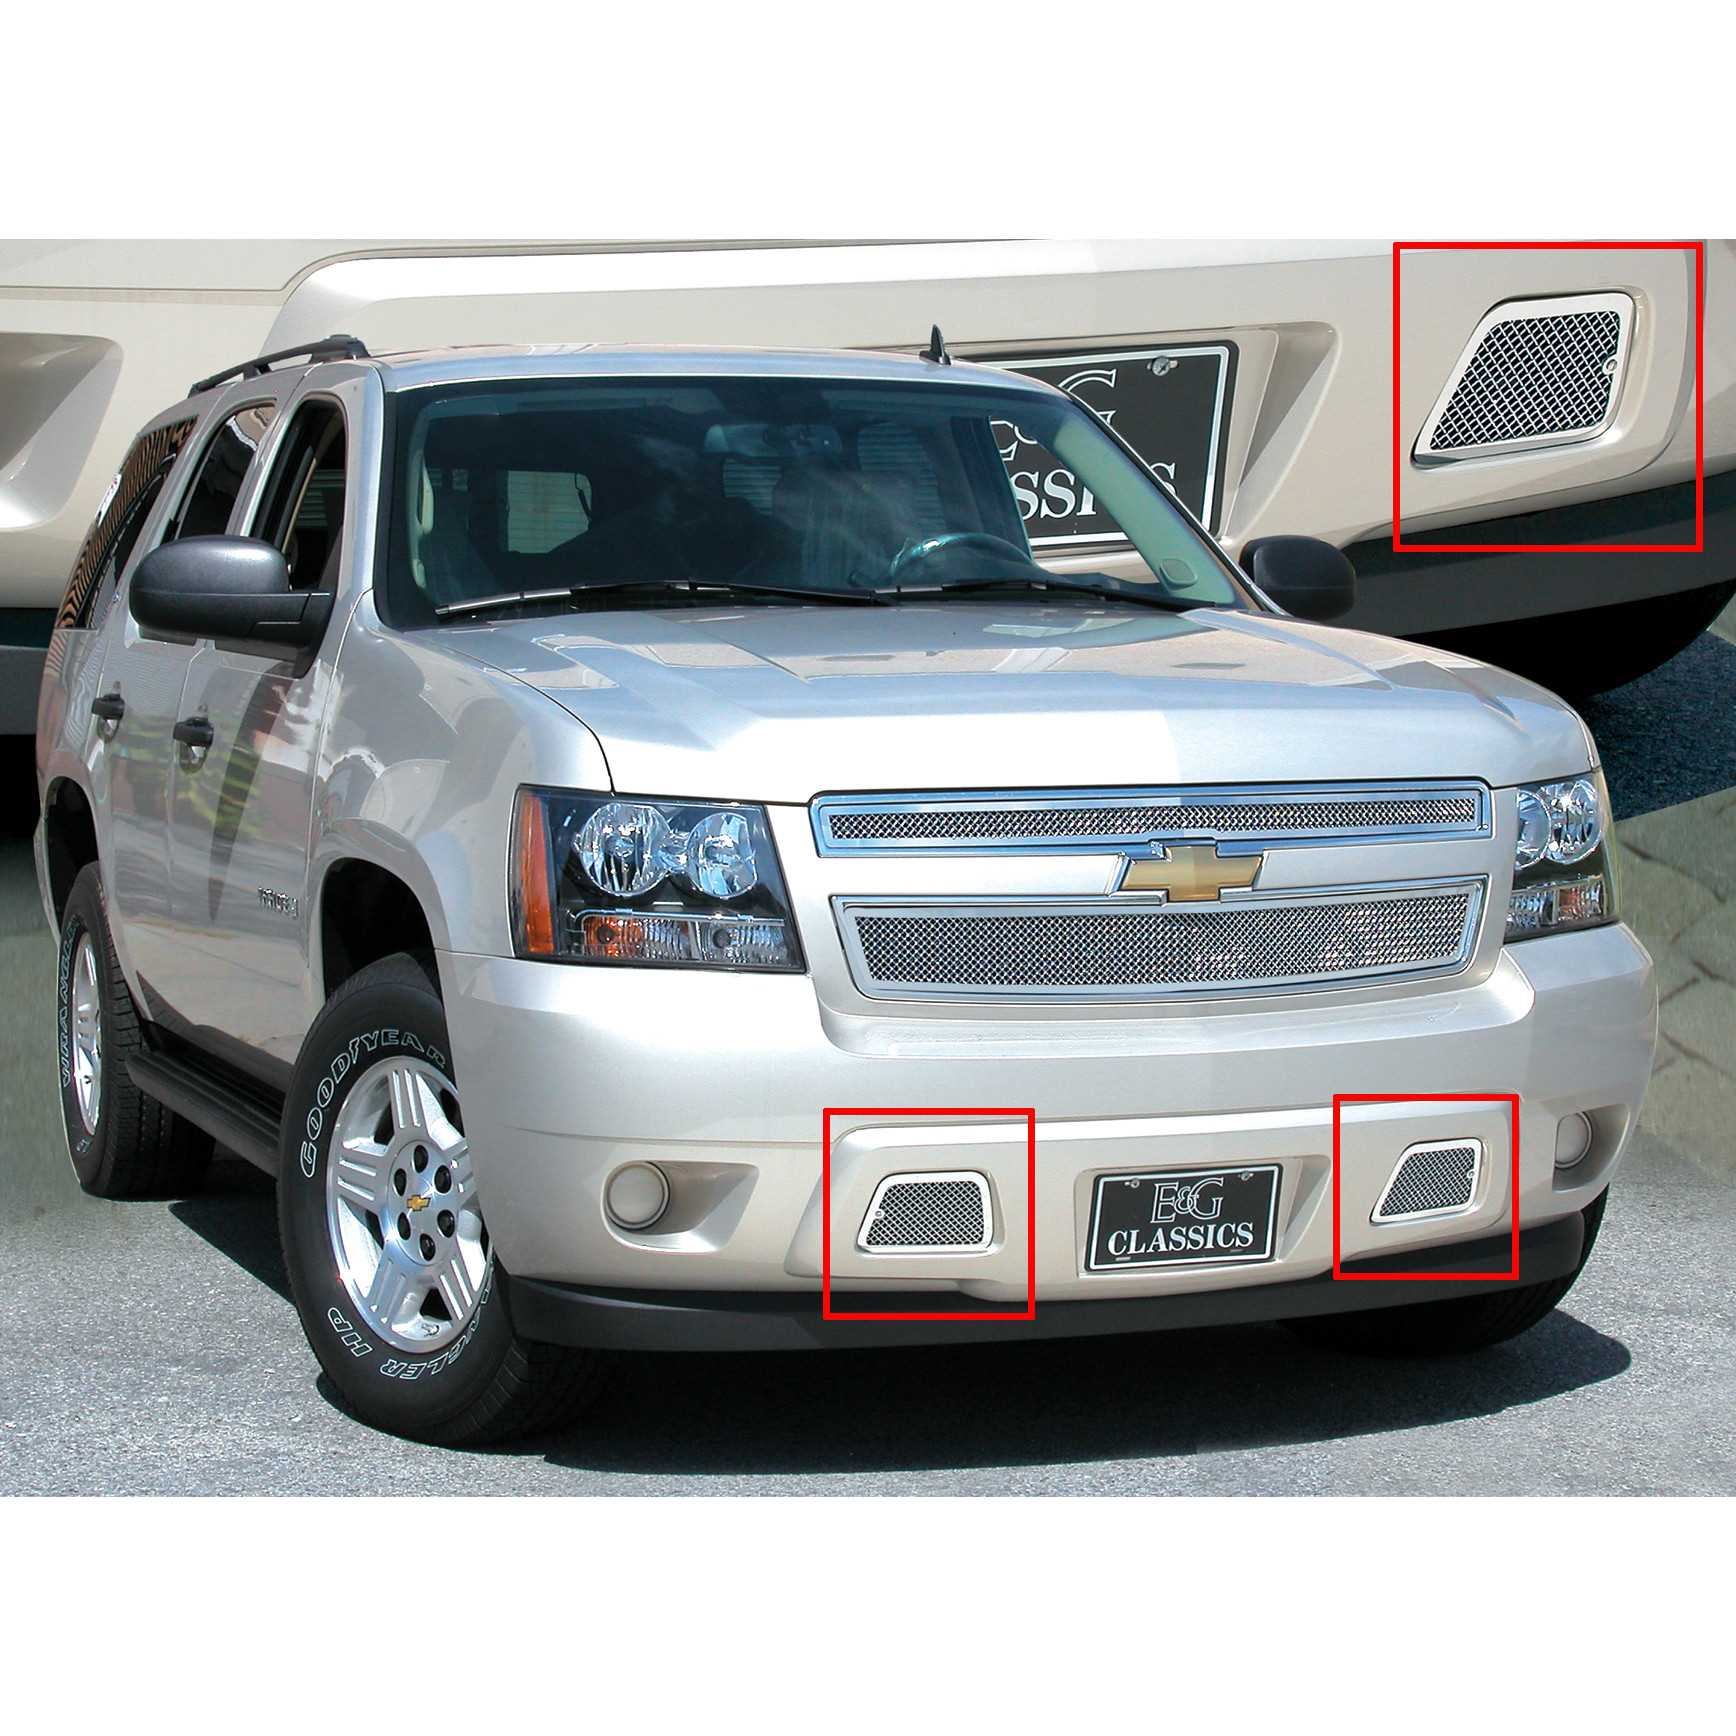 E g classics 2007 2014 chevrolet avalanche grille fine mesh tow hook cover 1157 010t 07